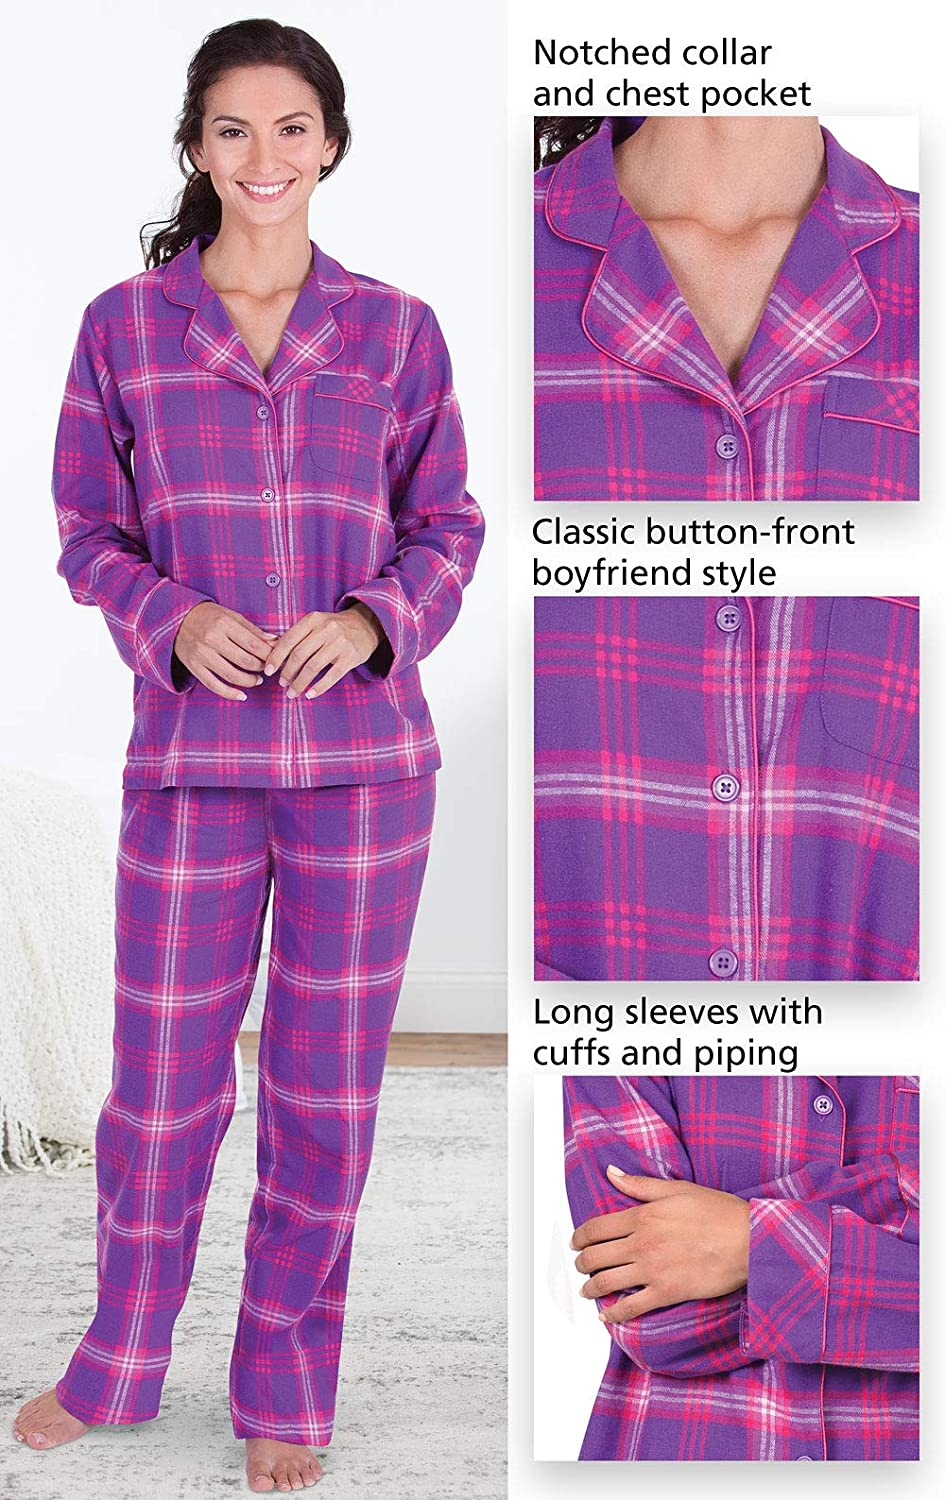 582d932505676 PajamaGram Womens Pajama Sets Flannel - Cozy Ladies Pajamas at Amazon  Women's Clothing store: